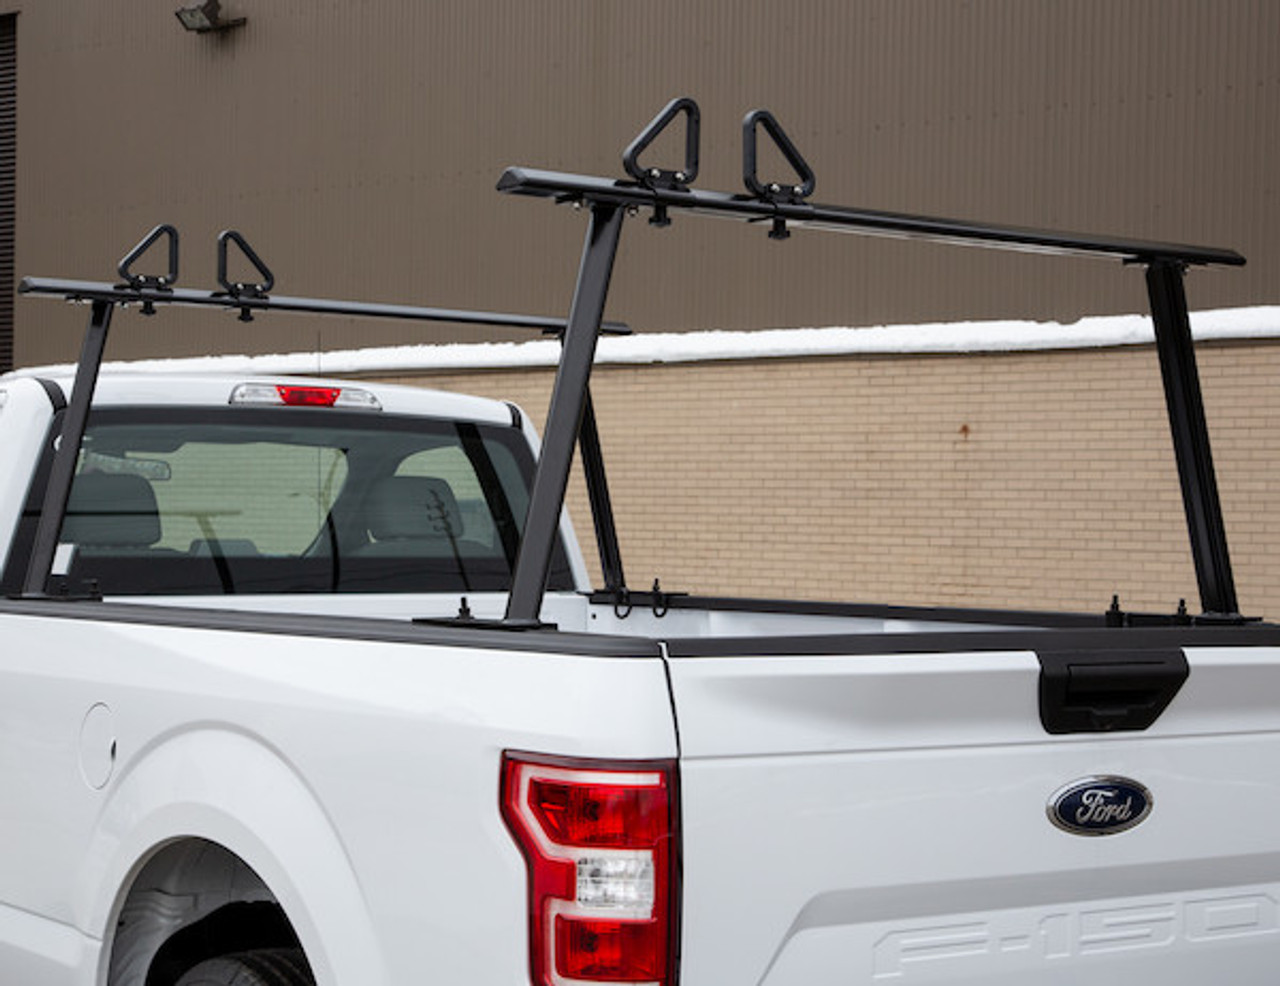 BUYERS 1501680 Black Aluminum Truck Rack for Contractors, Construction, Electricians Picture # 1